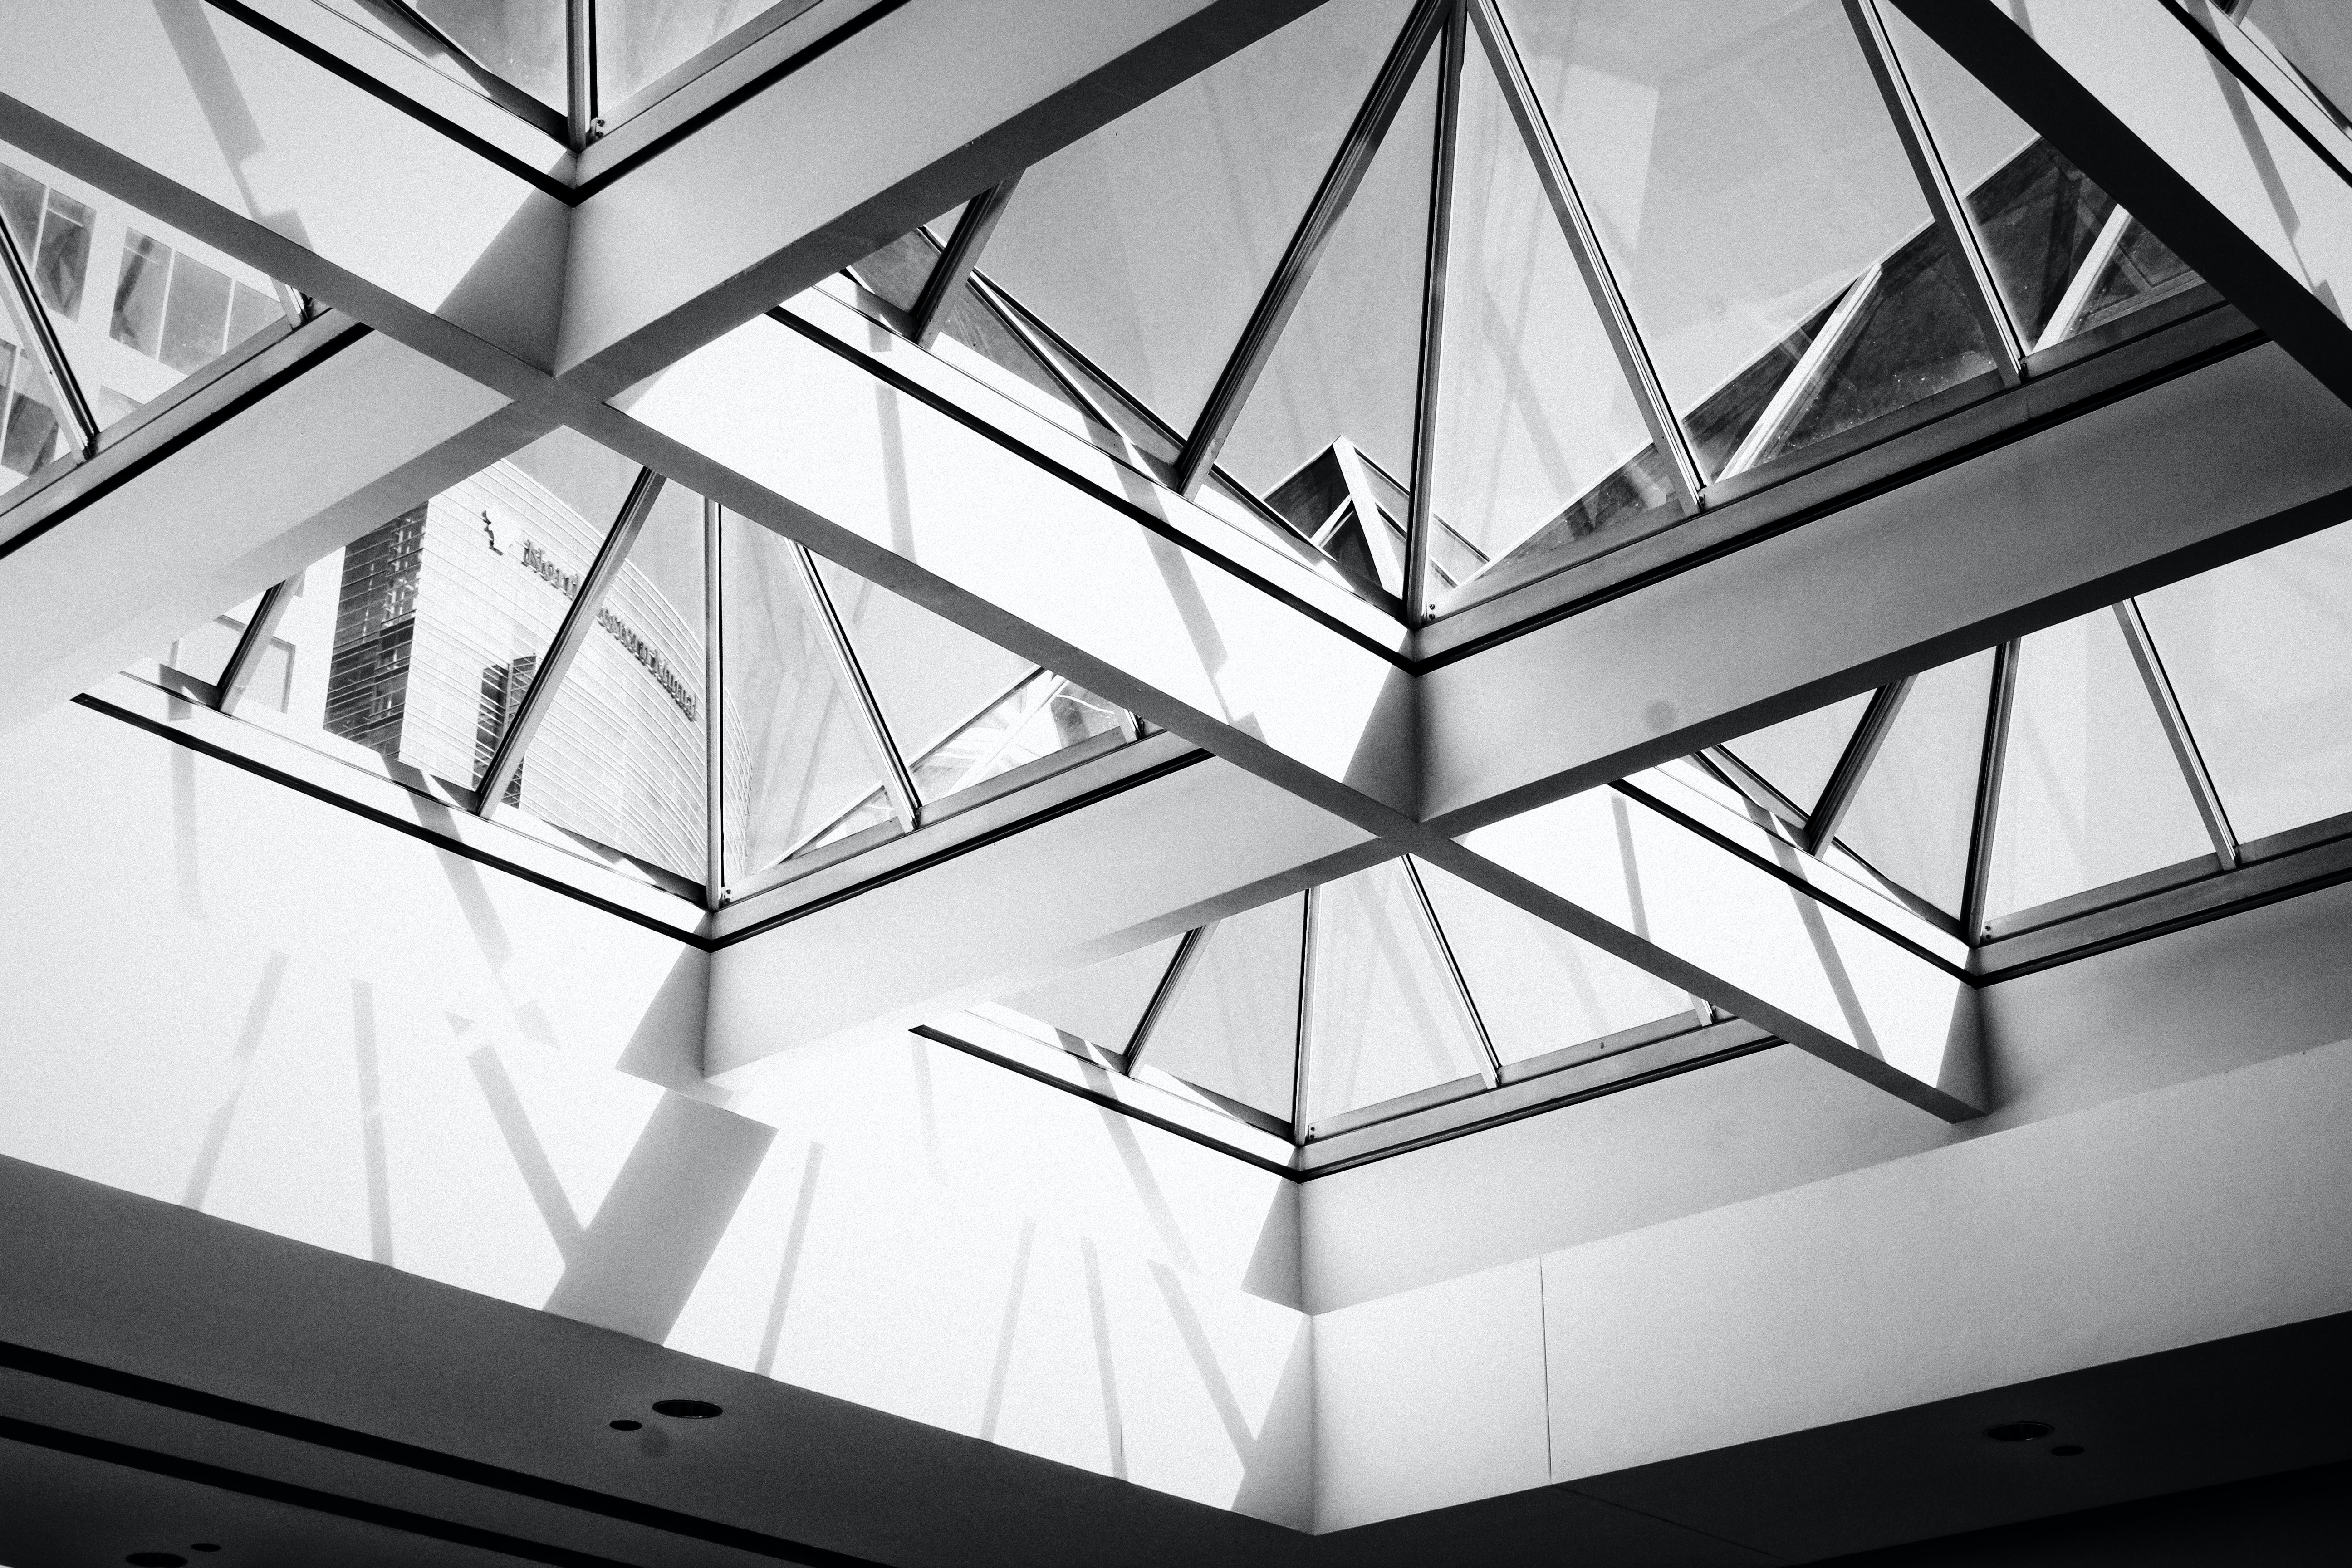 low angle photography of white framed glass roof